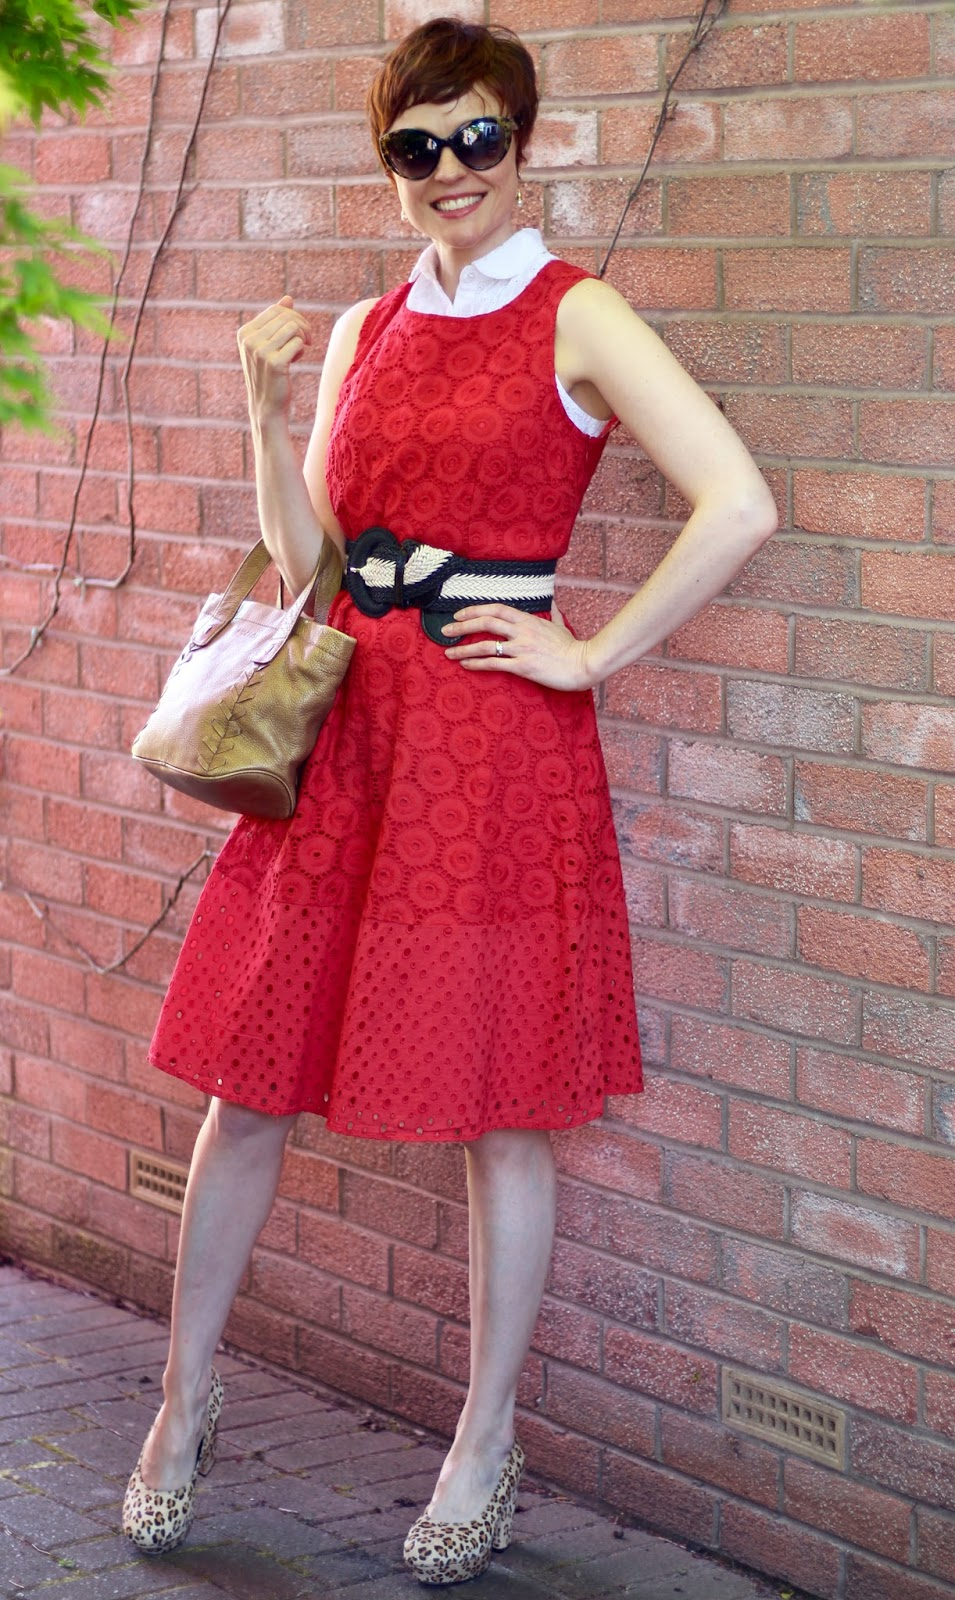 e932658f4f1de0 White sleeveless shirt under a red dress, leopard platform shoes & Black&  white belt